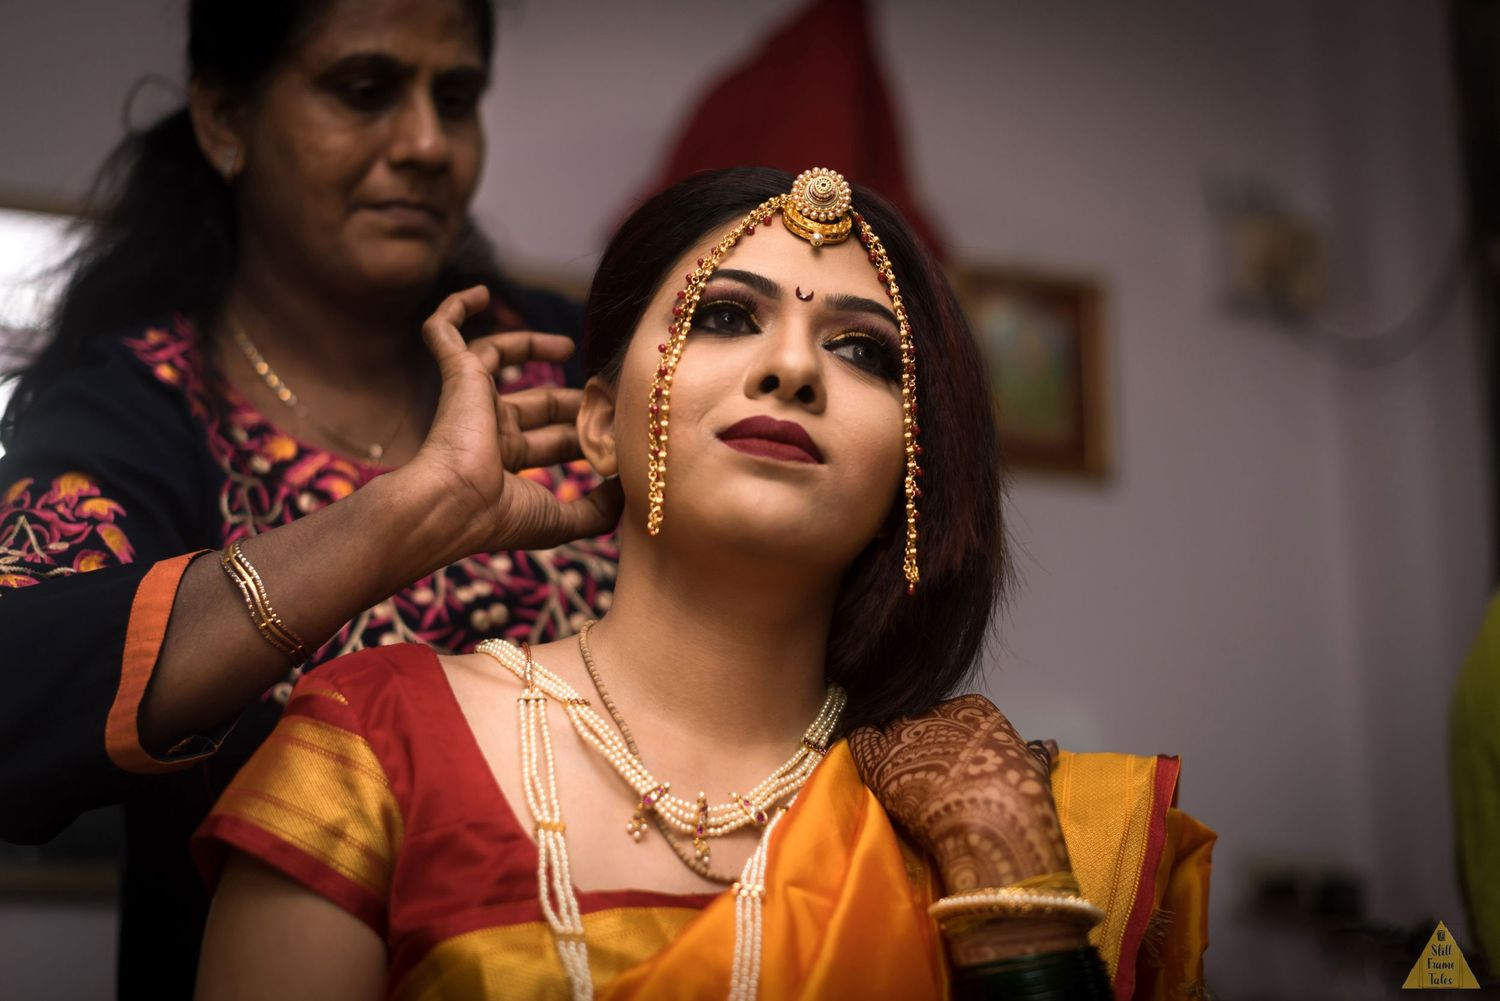 Elegant Indian bride getting ready for her wedding day